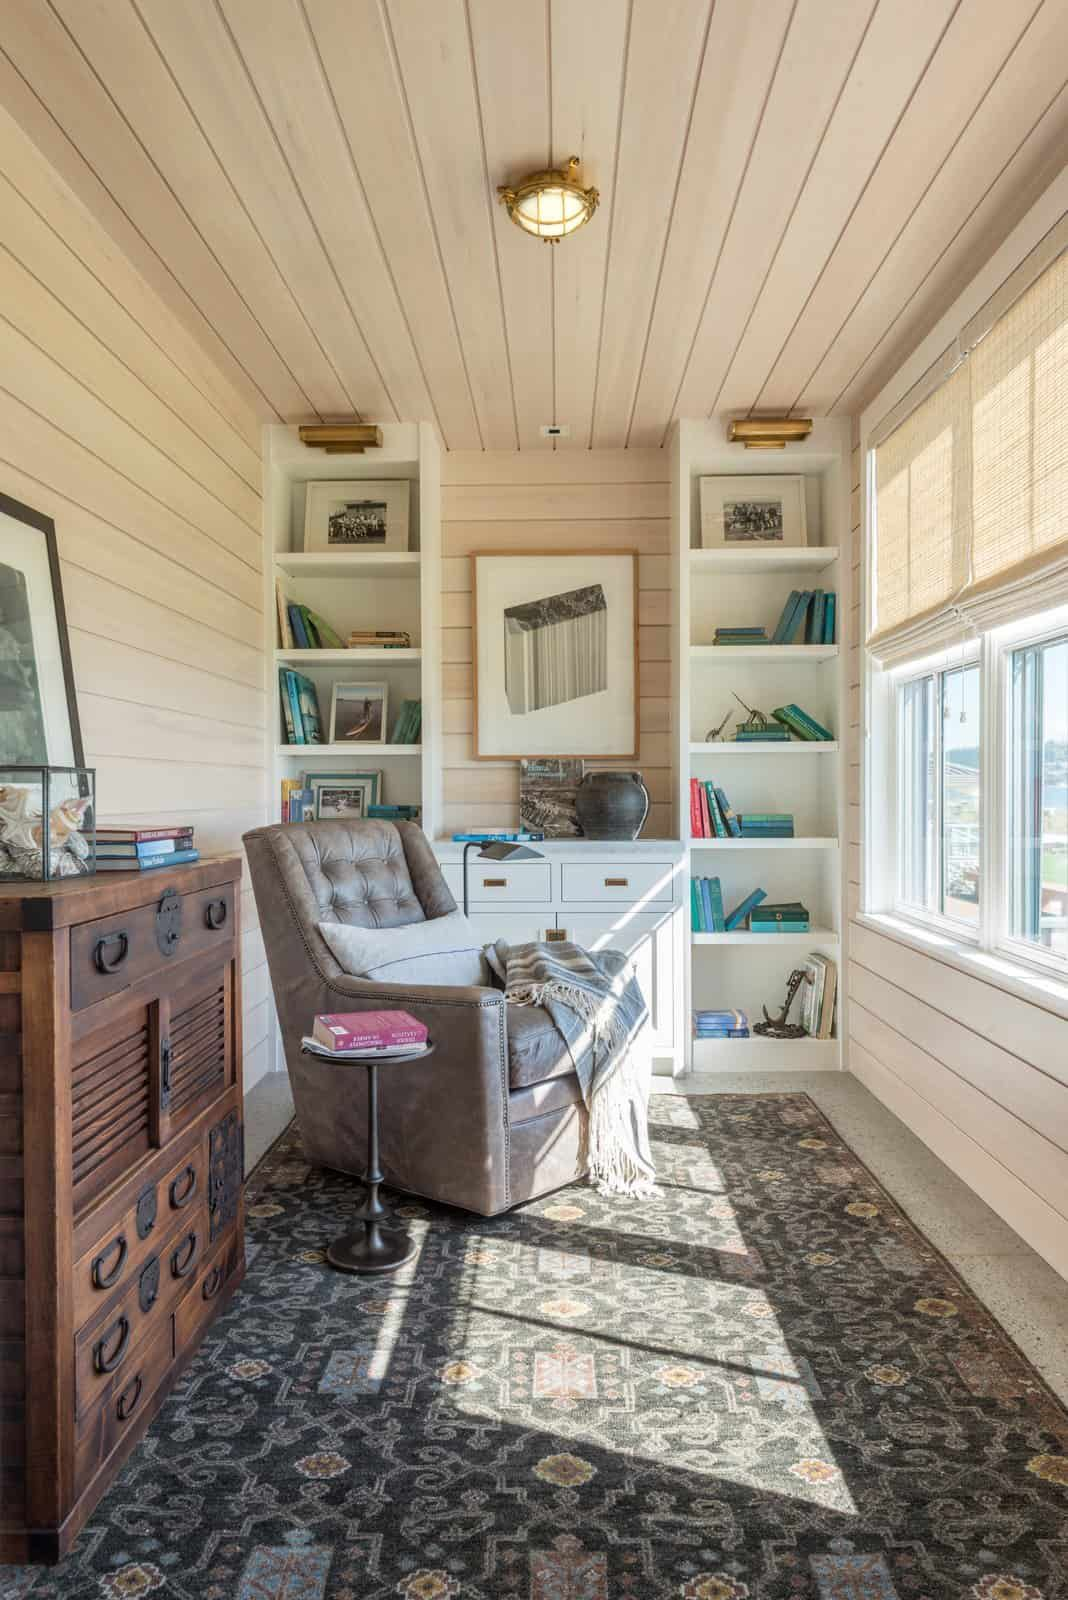 A reading nook was set up in front of a window, furnished with charming retro pieces